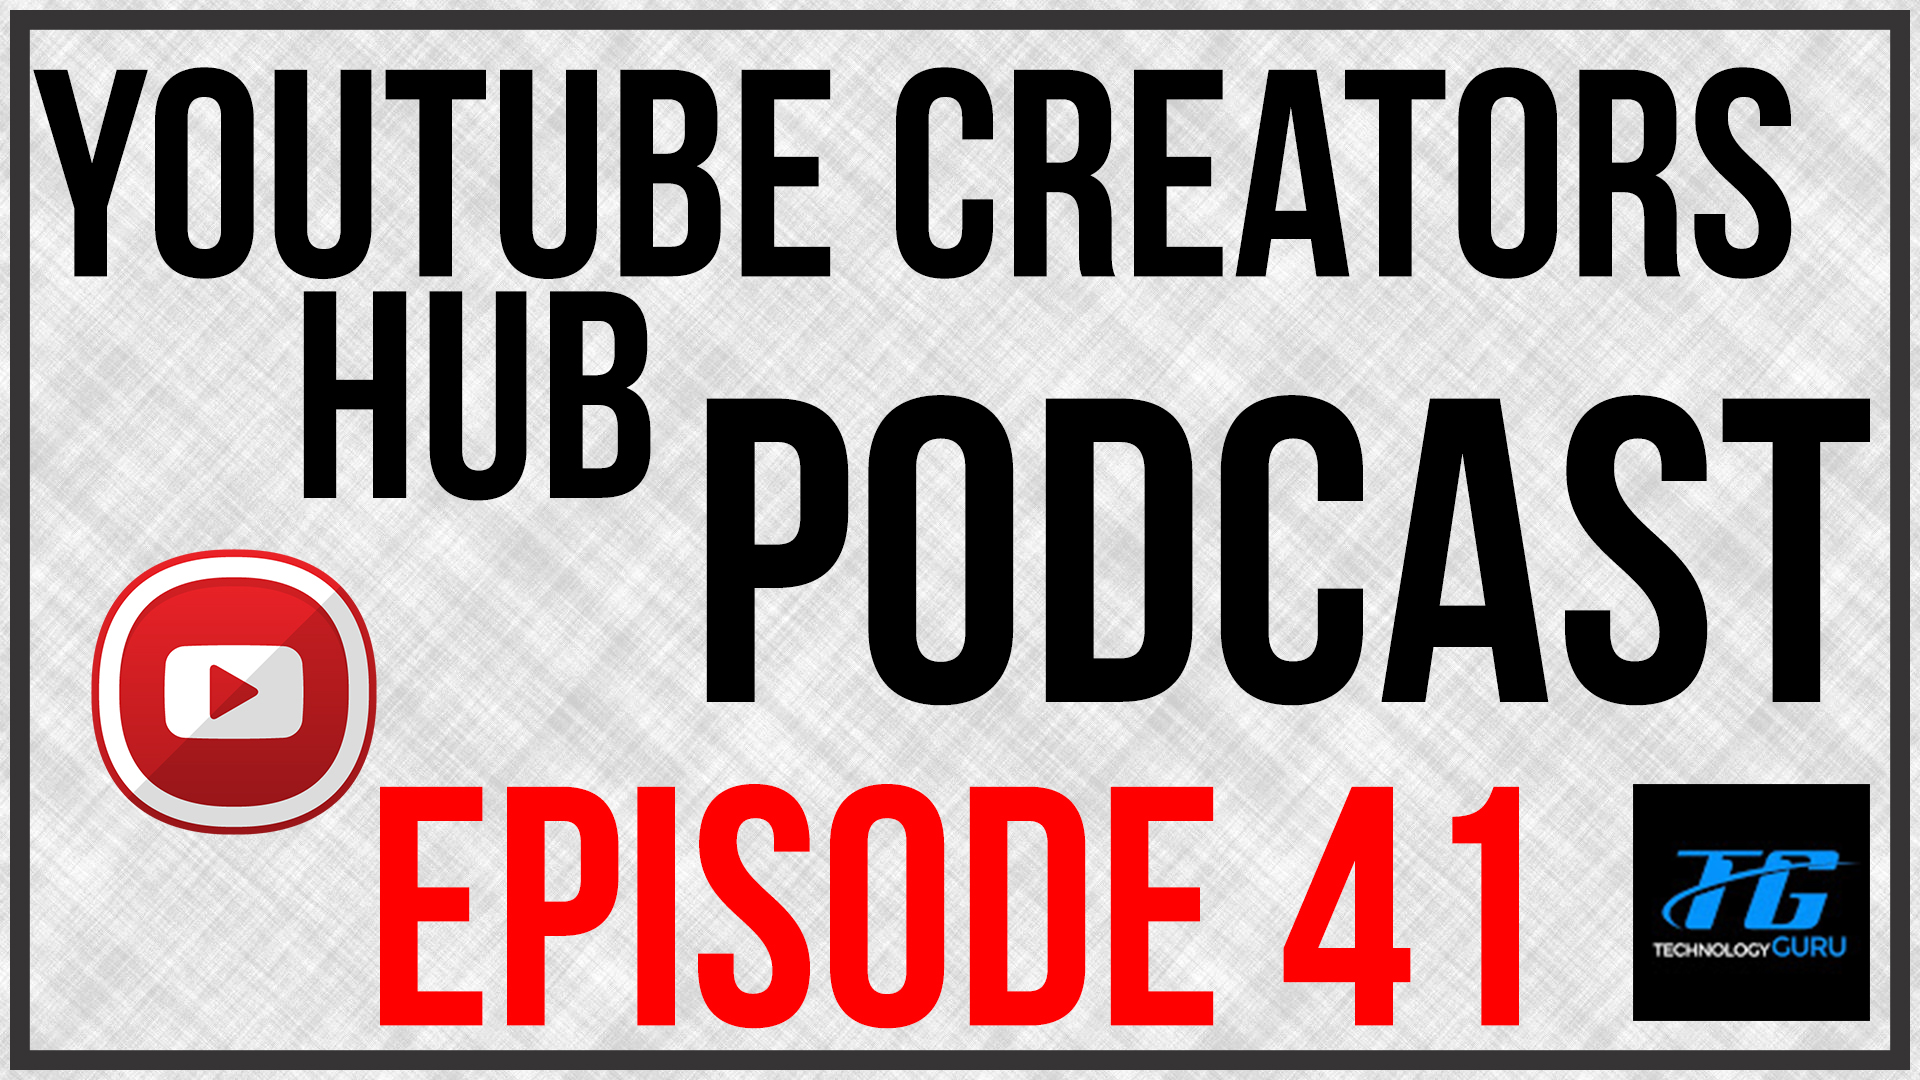 YouTube Creators Hub Podcast Episode 41